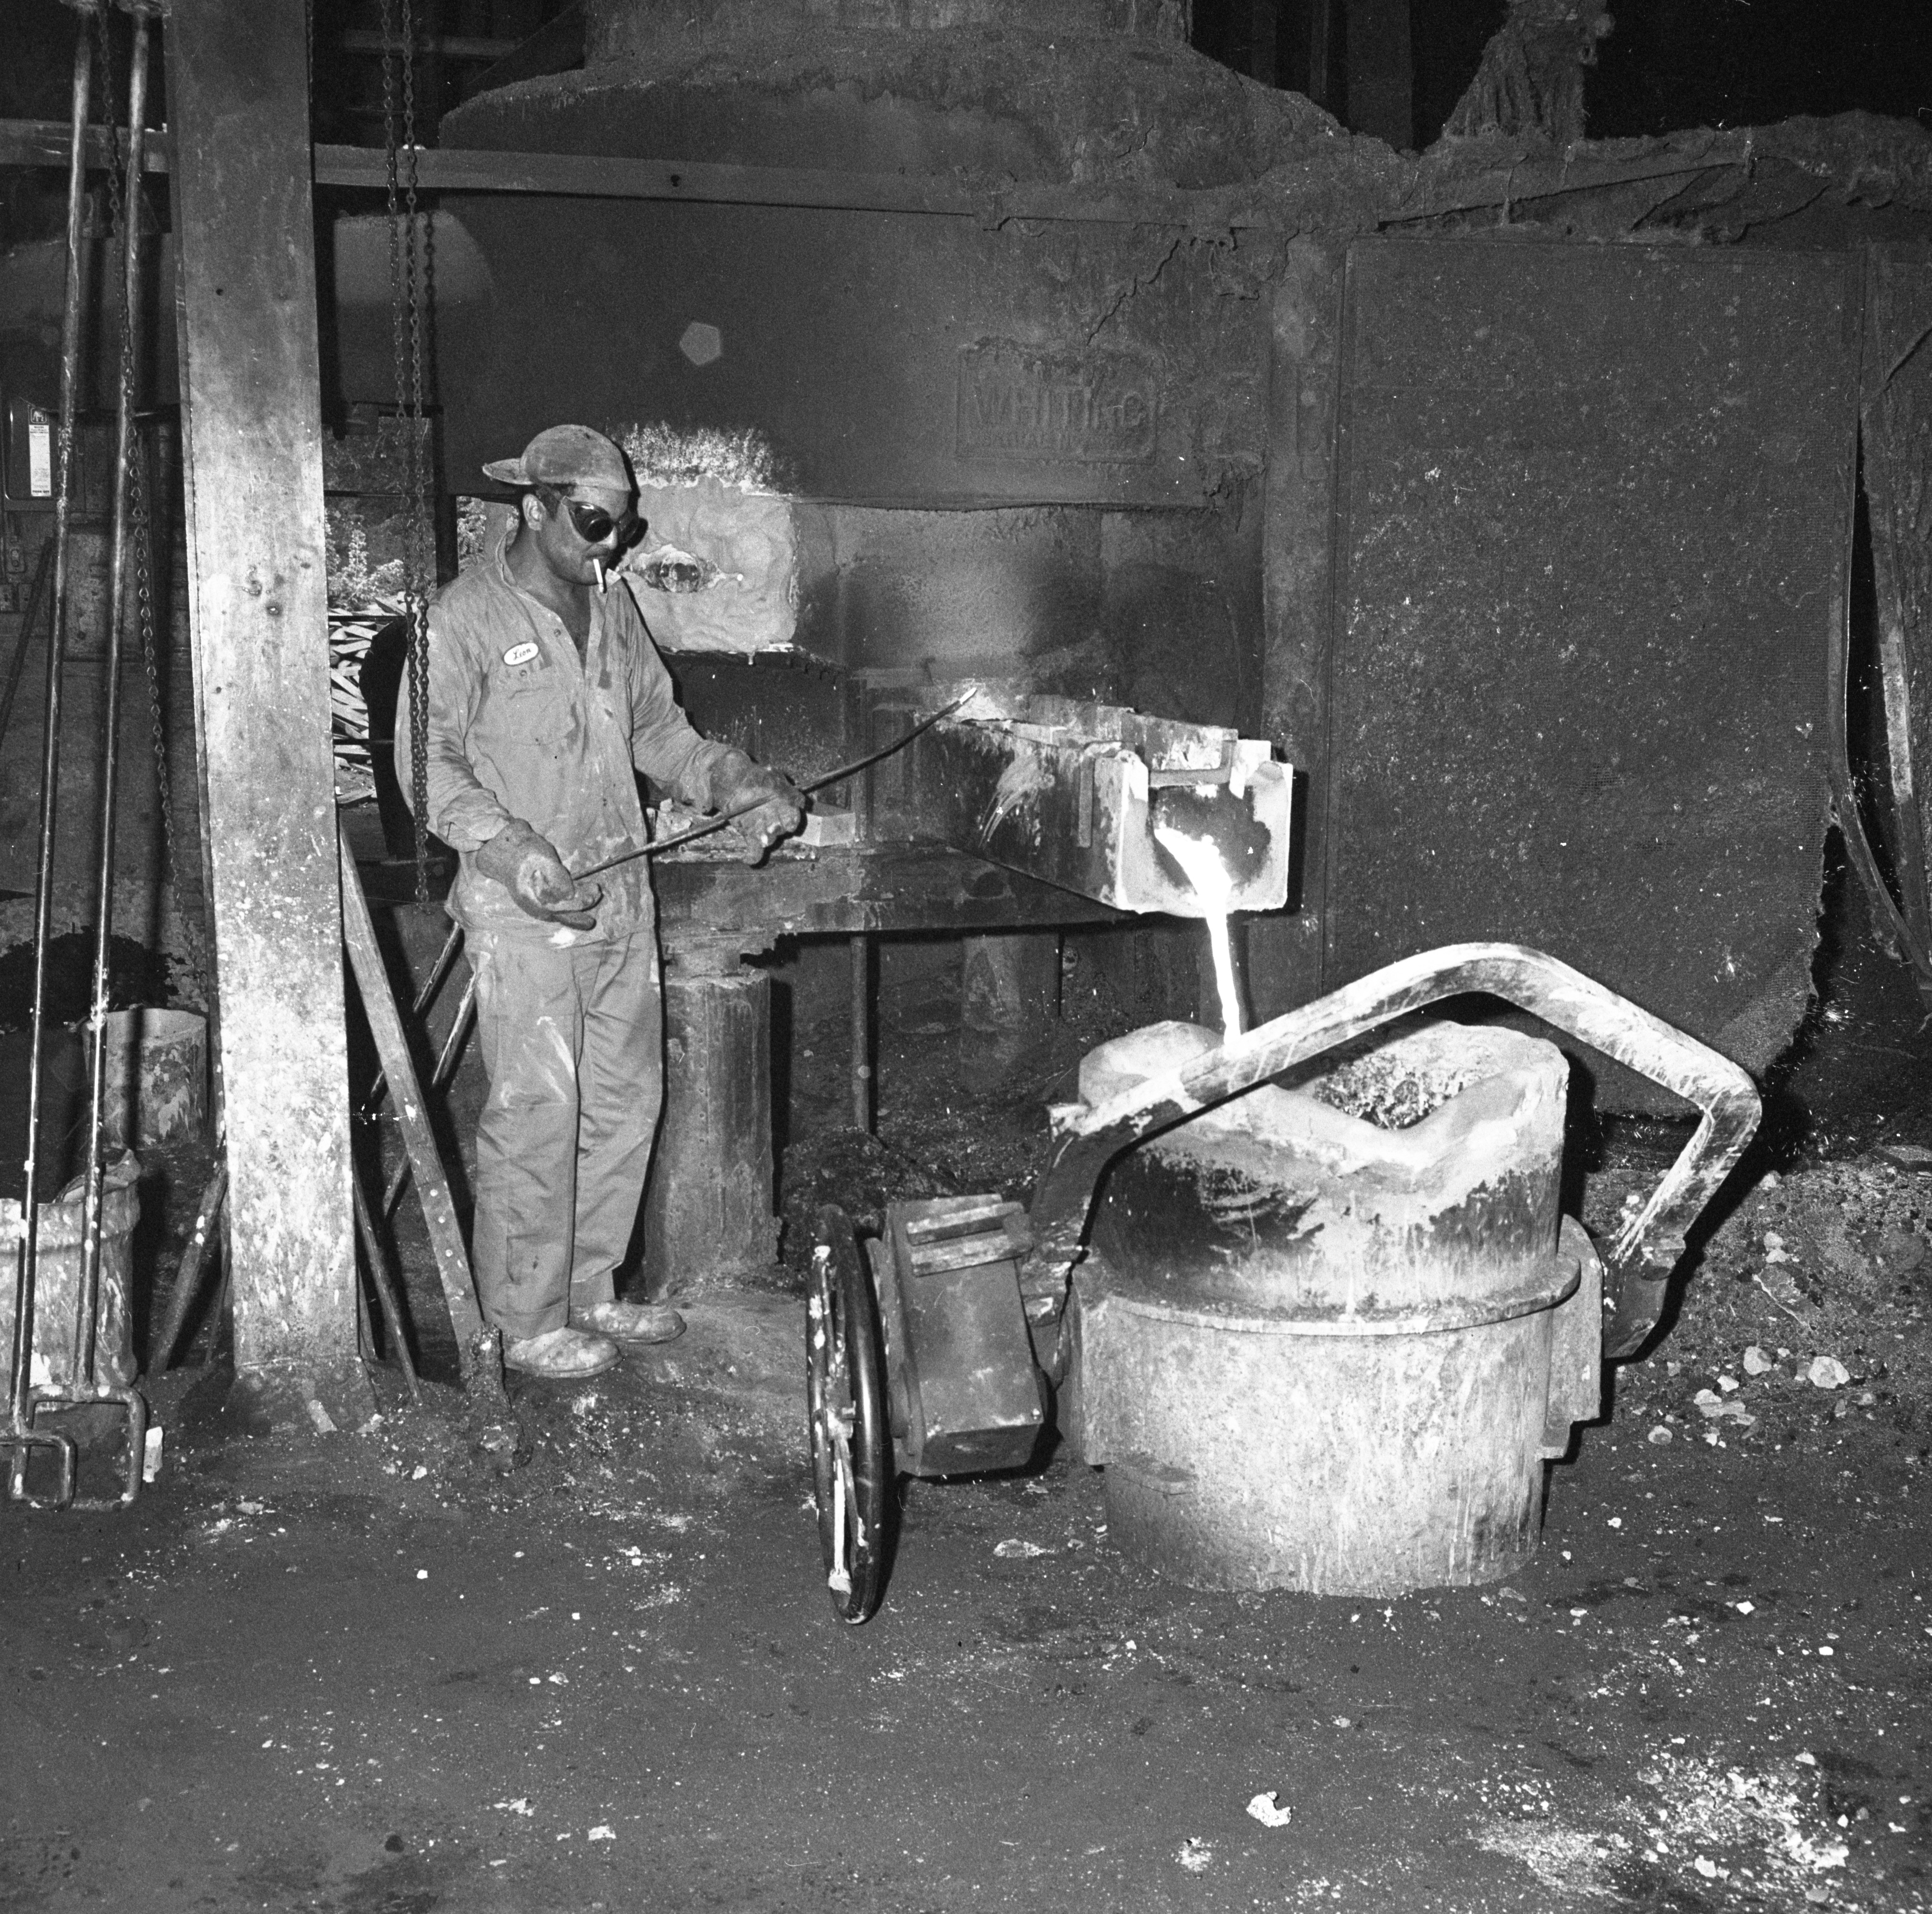 Employees Work With Molten Metal At The Ann Arbor Foundry, August 1964 image